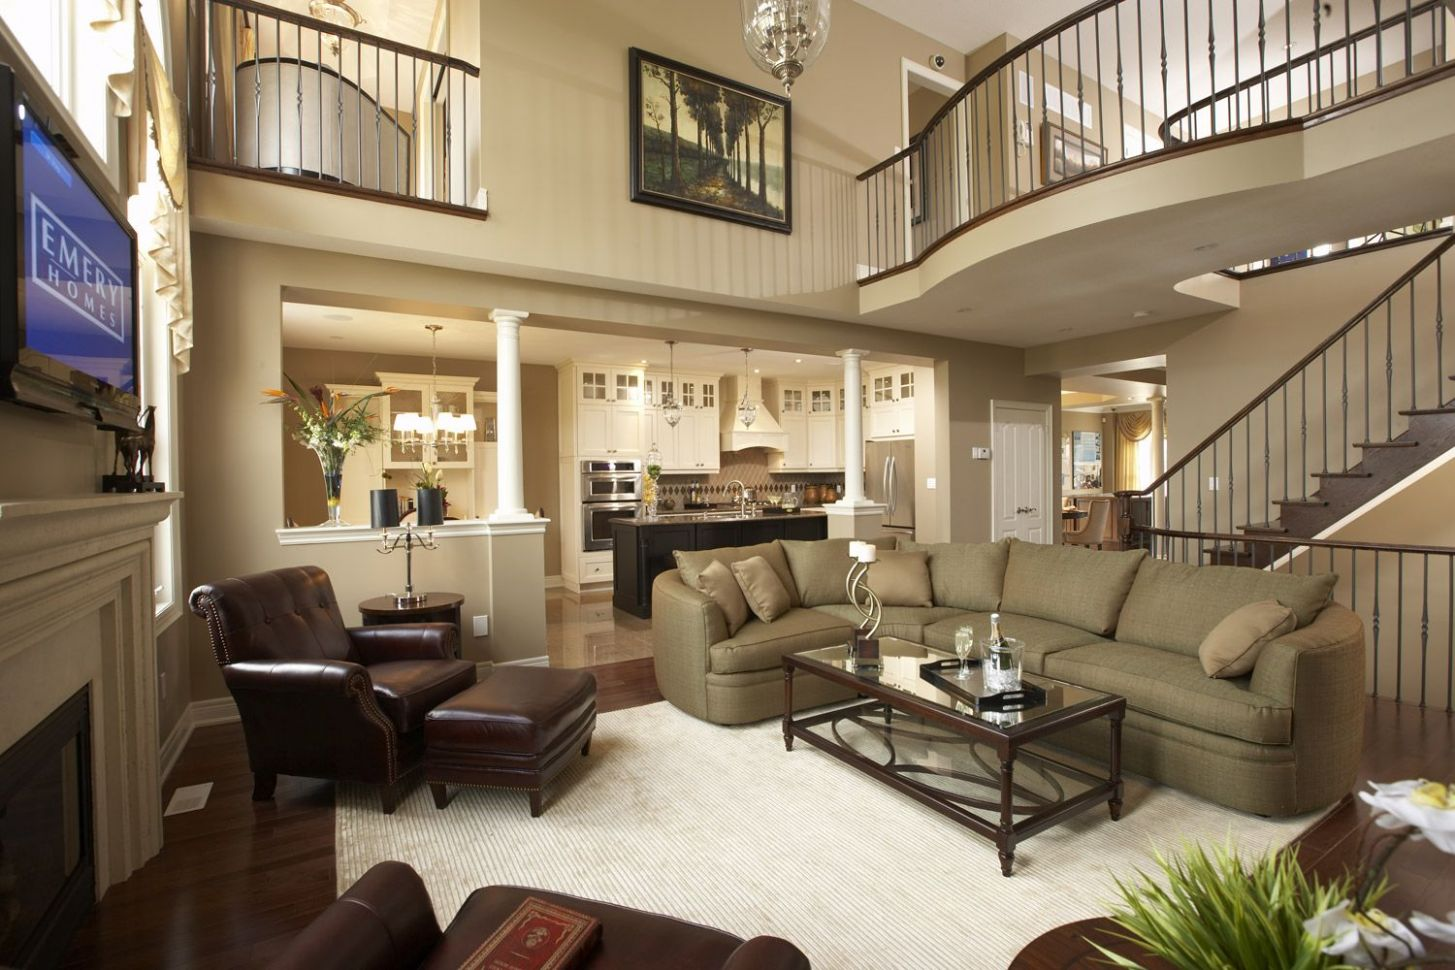 Single Family Home Prices Up (With images) | Model home decorating ...